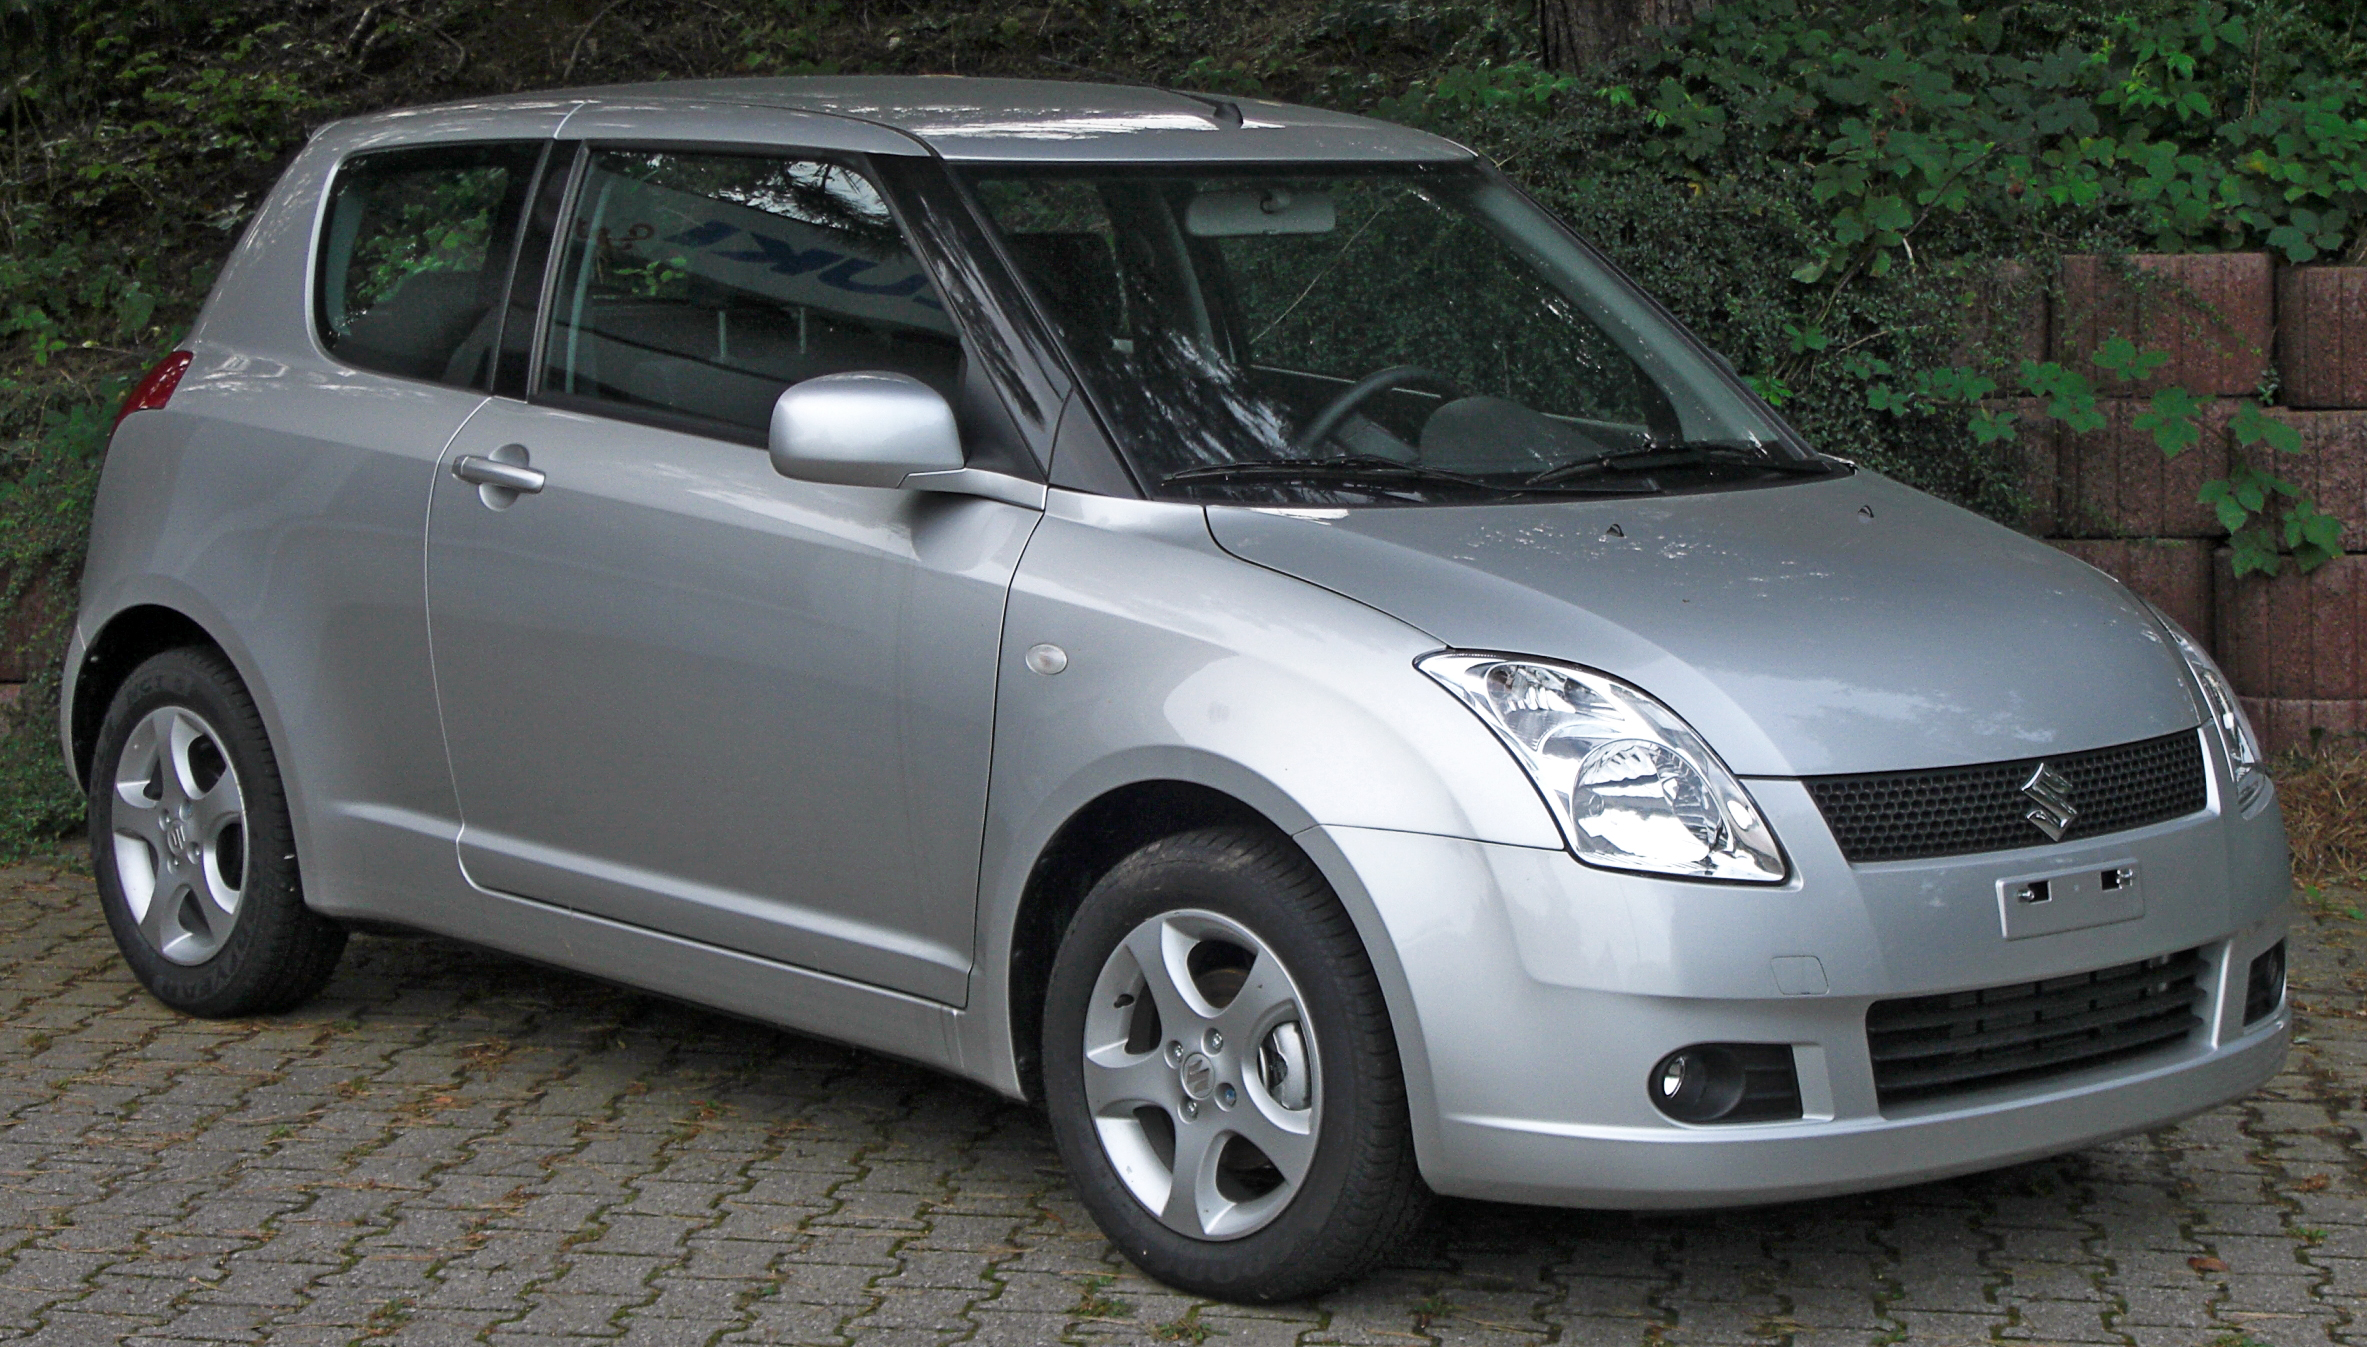 2007 suzuki swift iv pictures information and specs auto. Black Bedroom Furniture Sets. Home Design Ideas